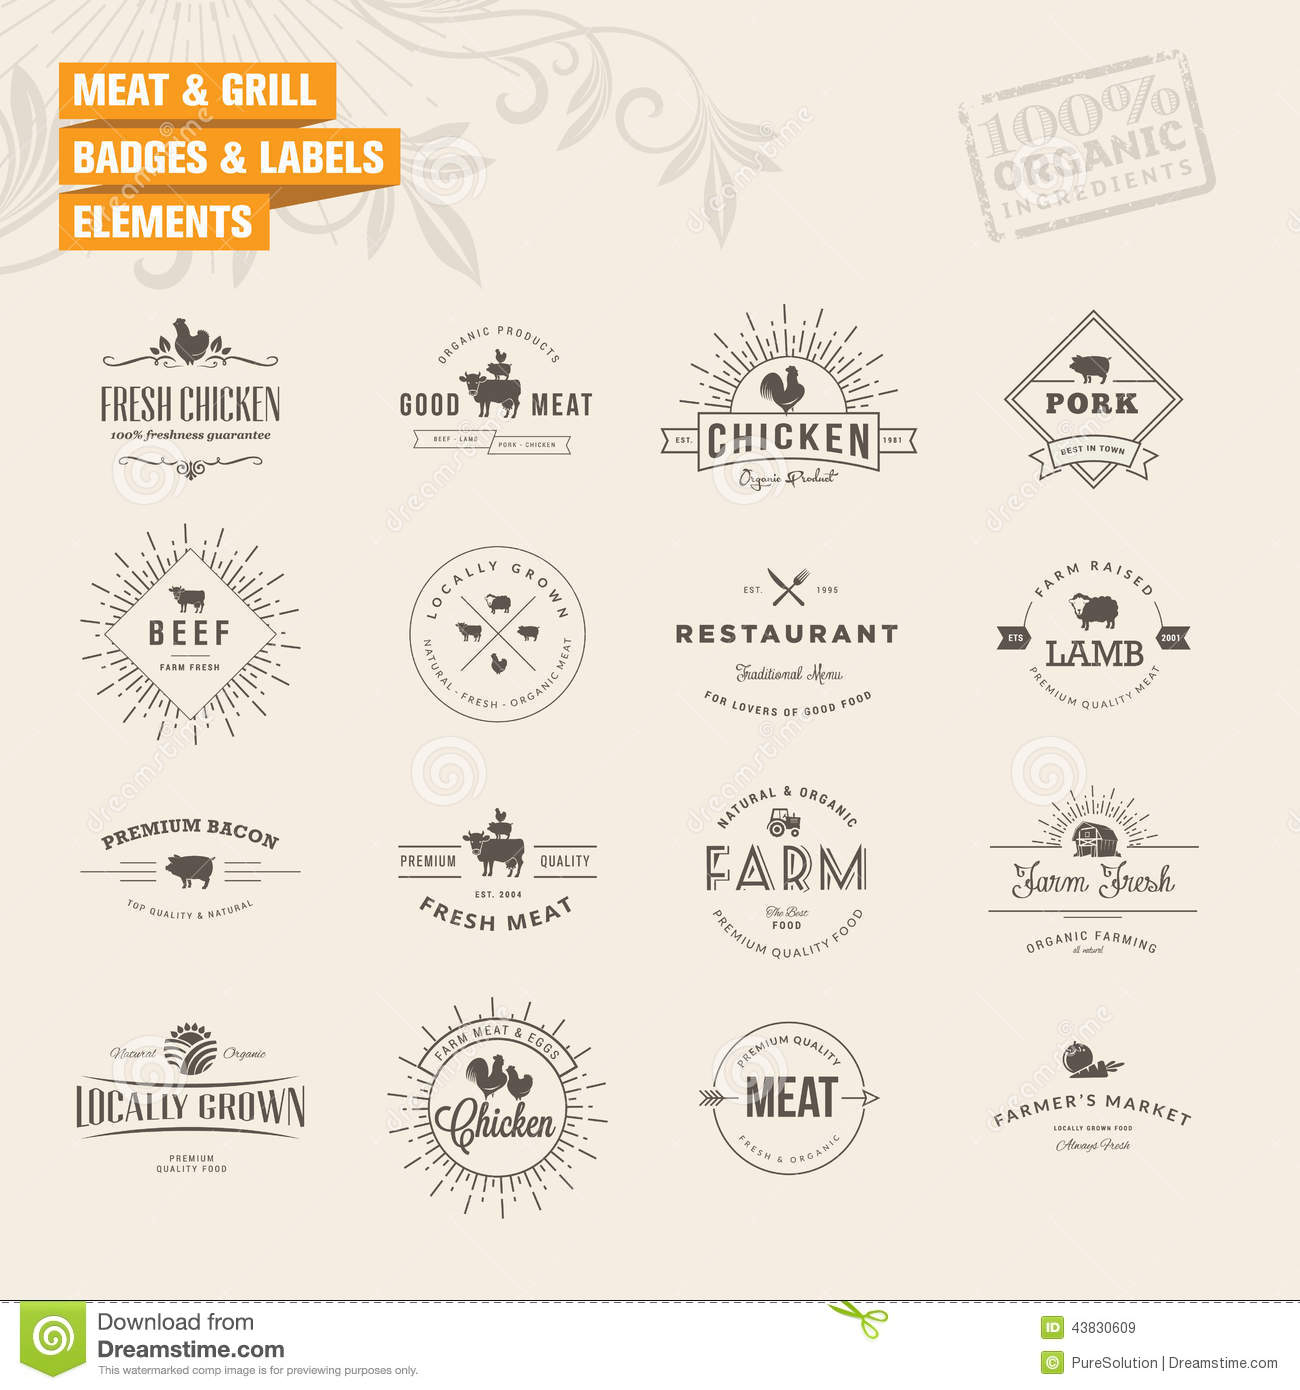 Set of badges and labels elements for meat and gri